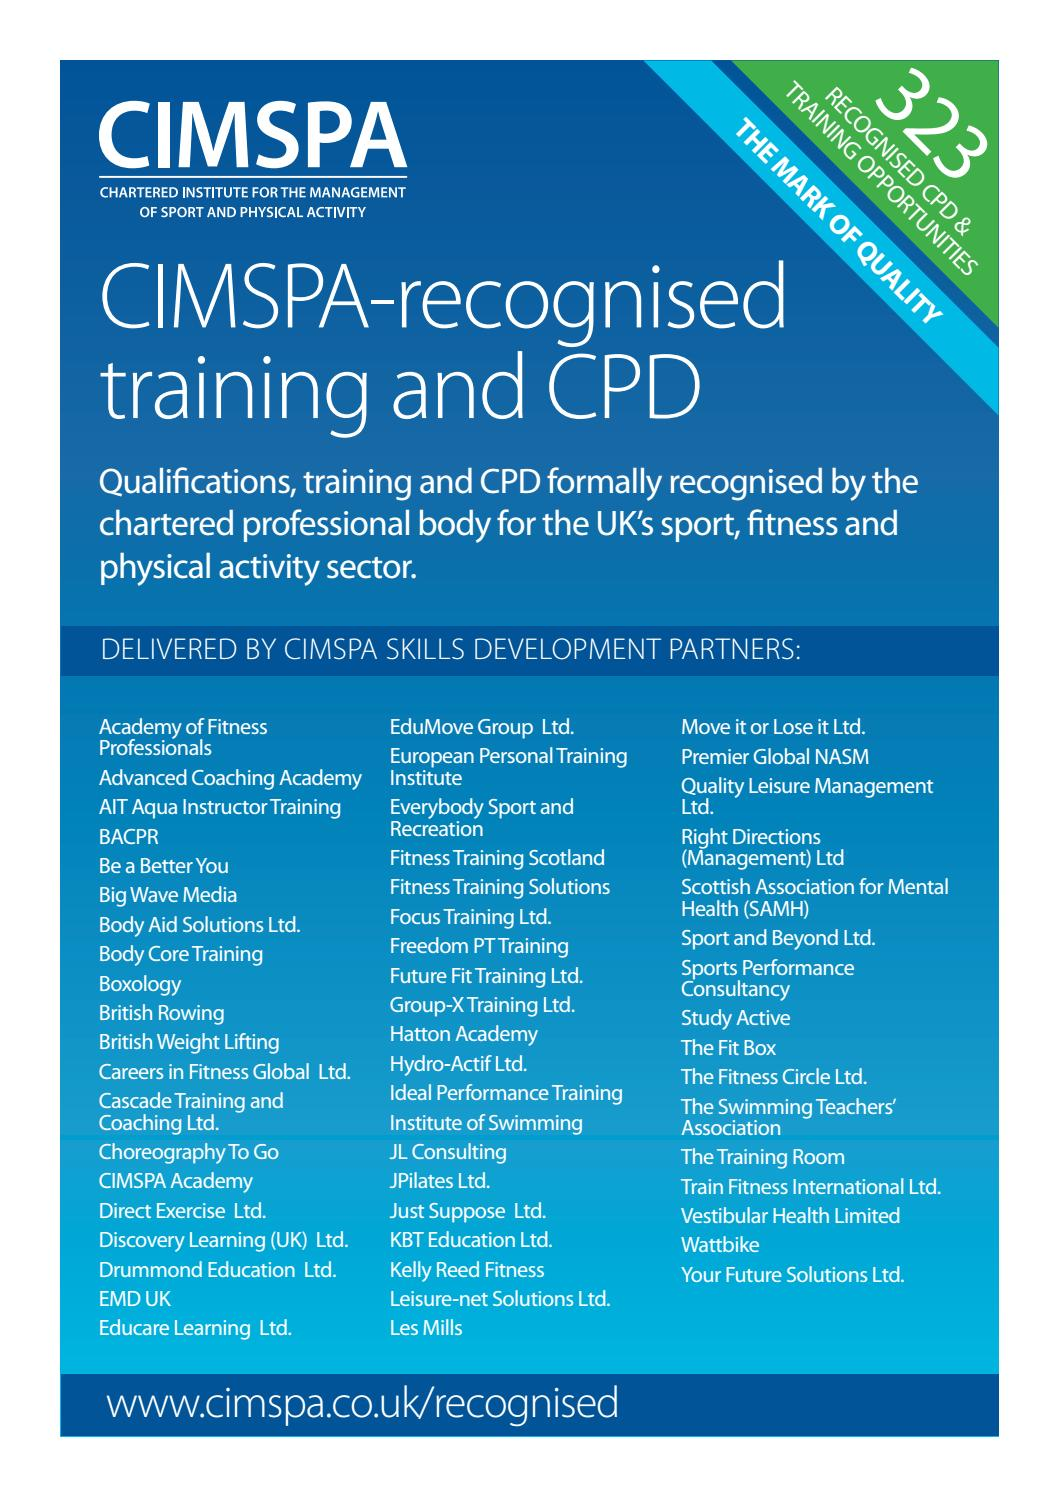 cf23c963ec8 CIMSPA recognised training and CPD by CIMSPA - issuu